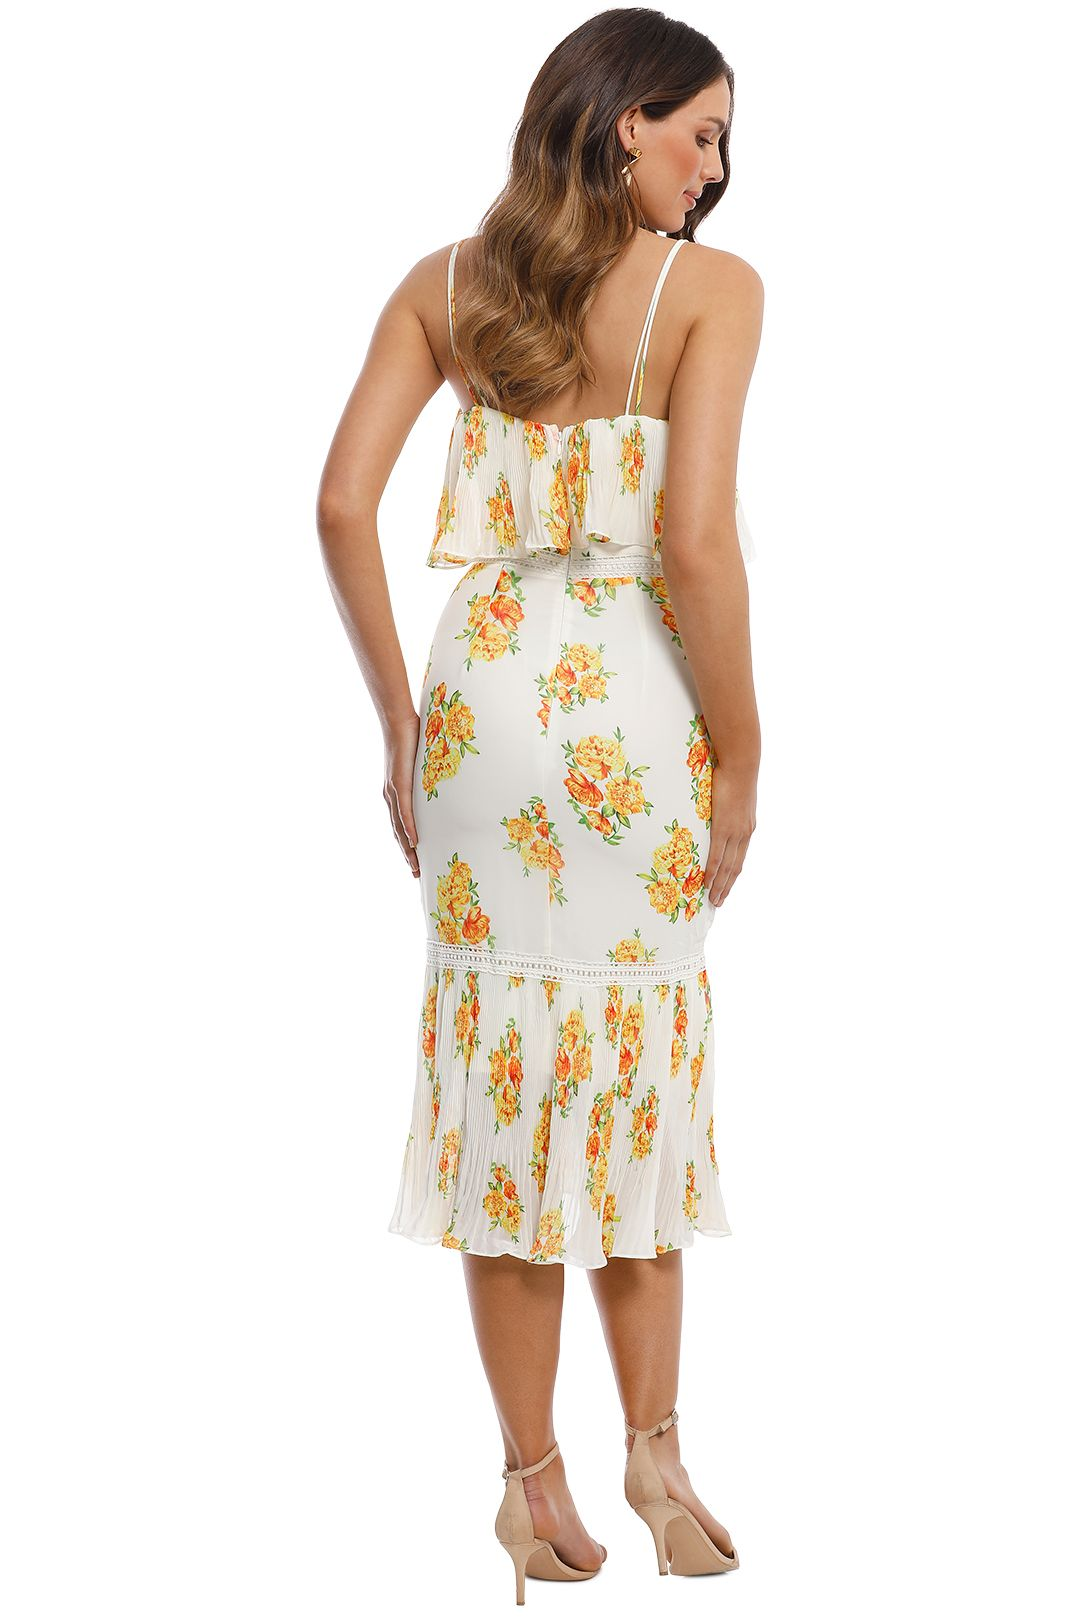 Cooper St - Darjeeling Fitted Layered Dress - Ivory Print - Back